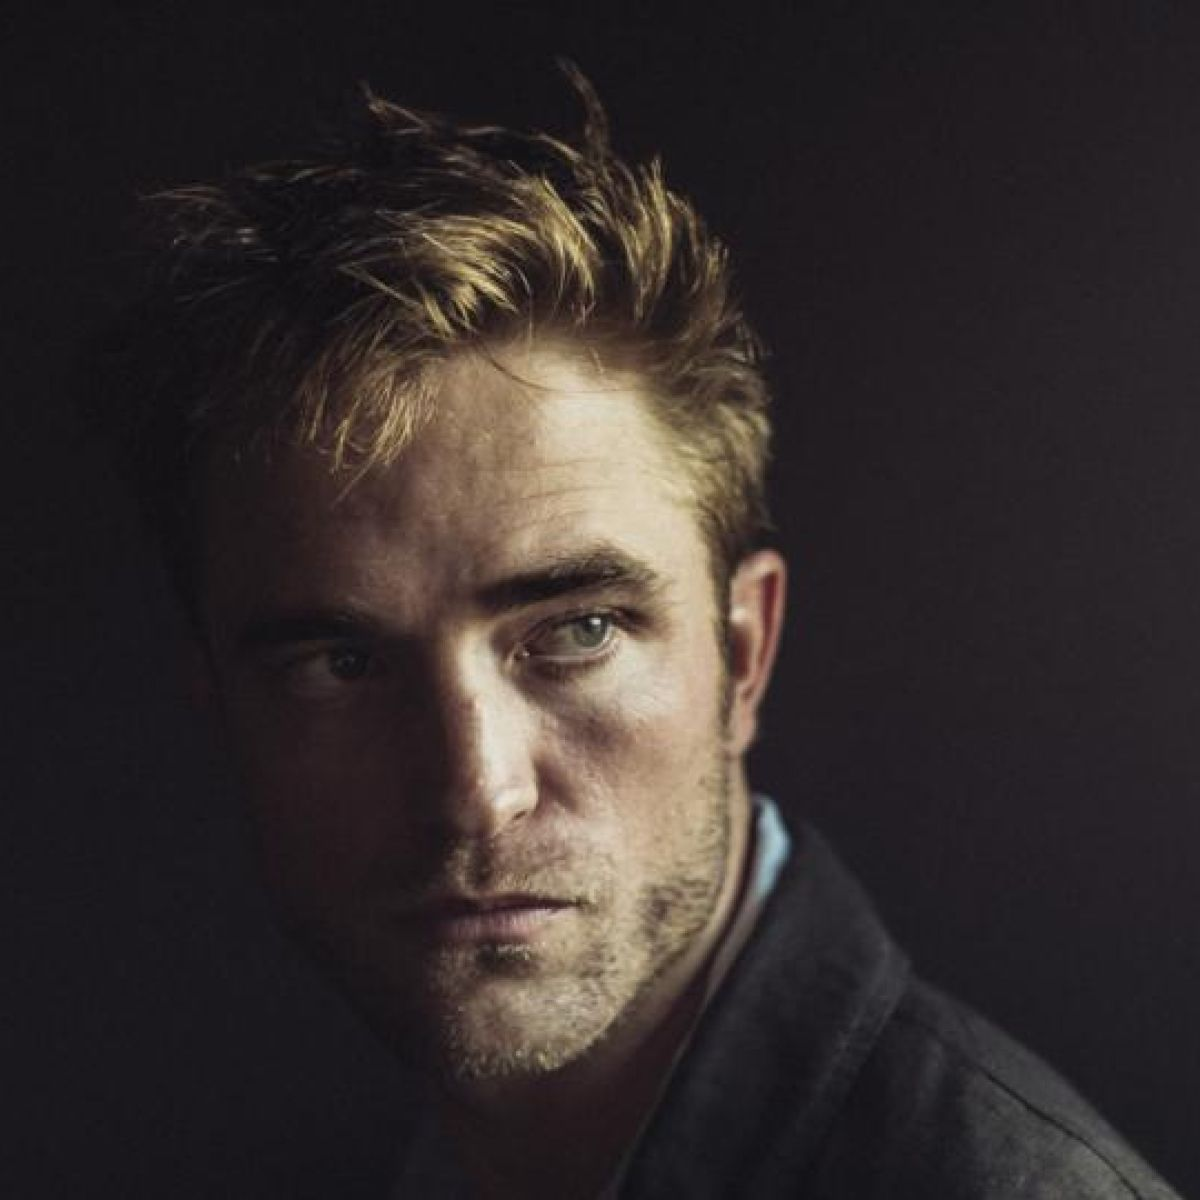 Who is robert pattinson dating october 2020